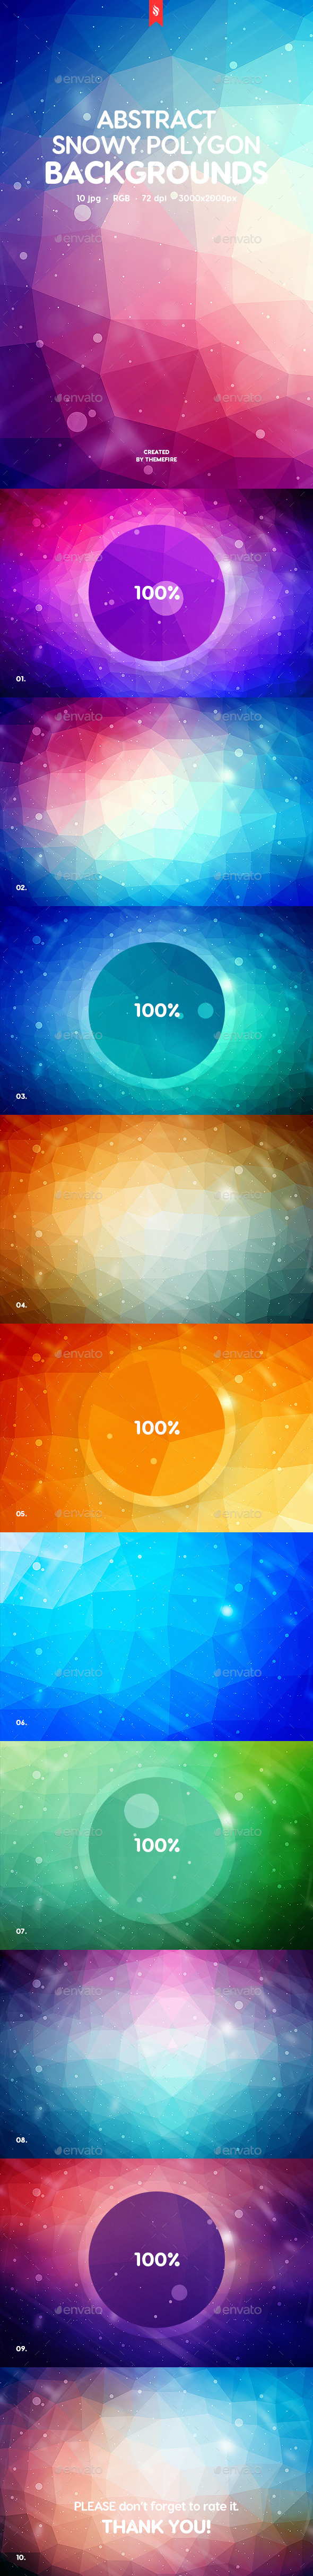 Snowy Polygon Backgrounds - Backgrounds Graphics